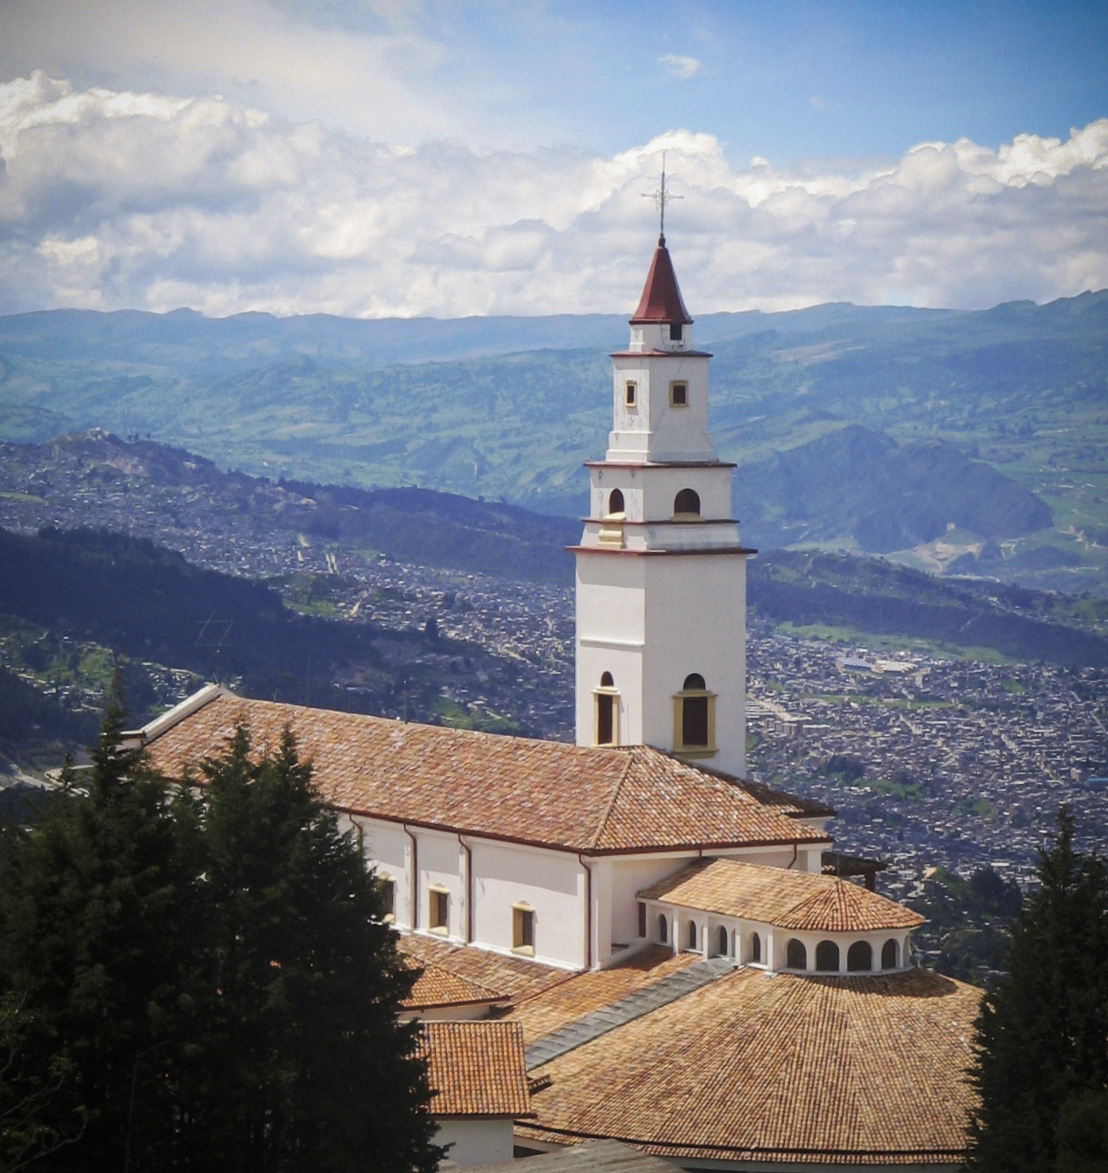 Sanctuary of Monserrate, Bogota, Colombia